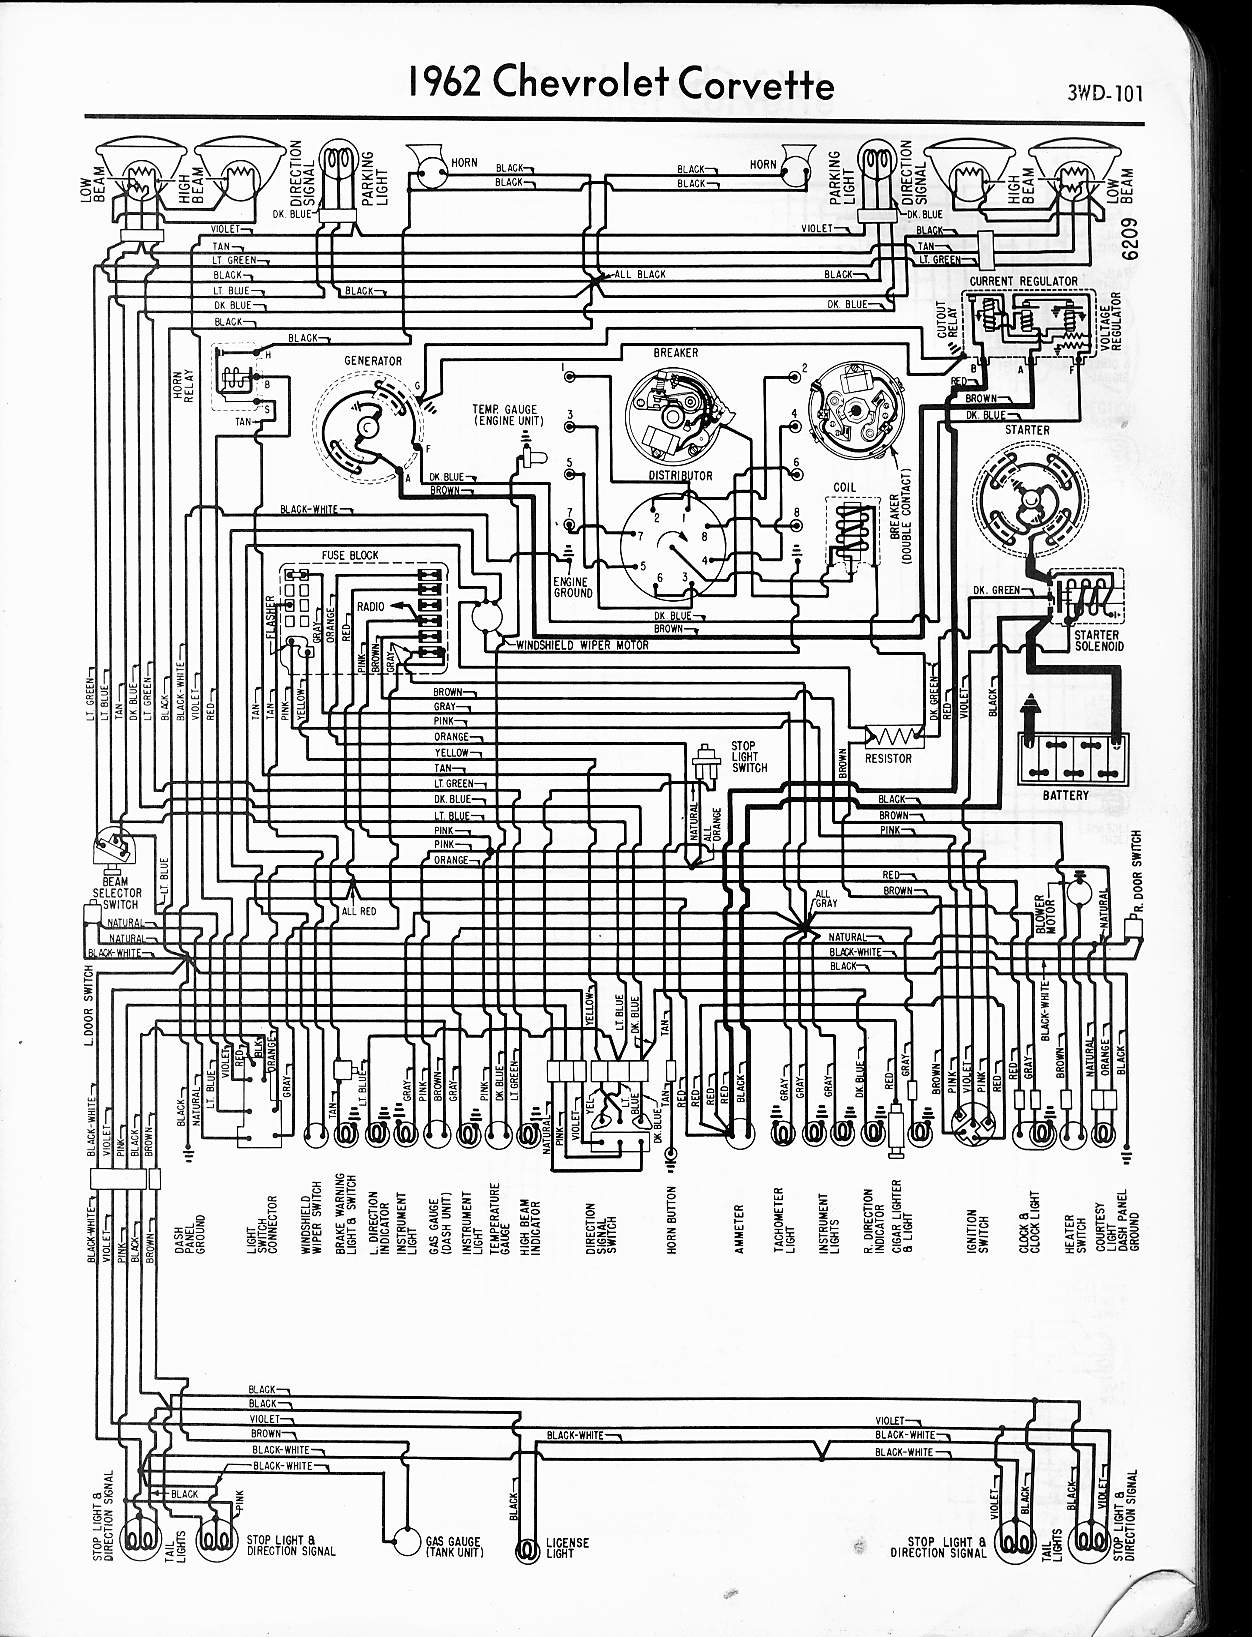 hight resolution of wrg 1299 shure 444 microphone wiring diagram hecho1962 corvette wiring diagram trusted schematics diagram rh